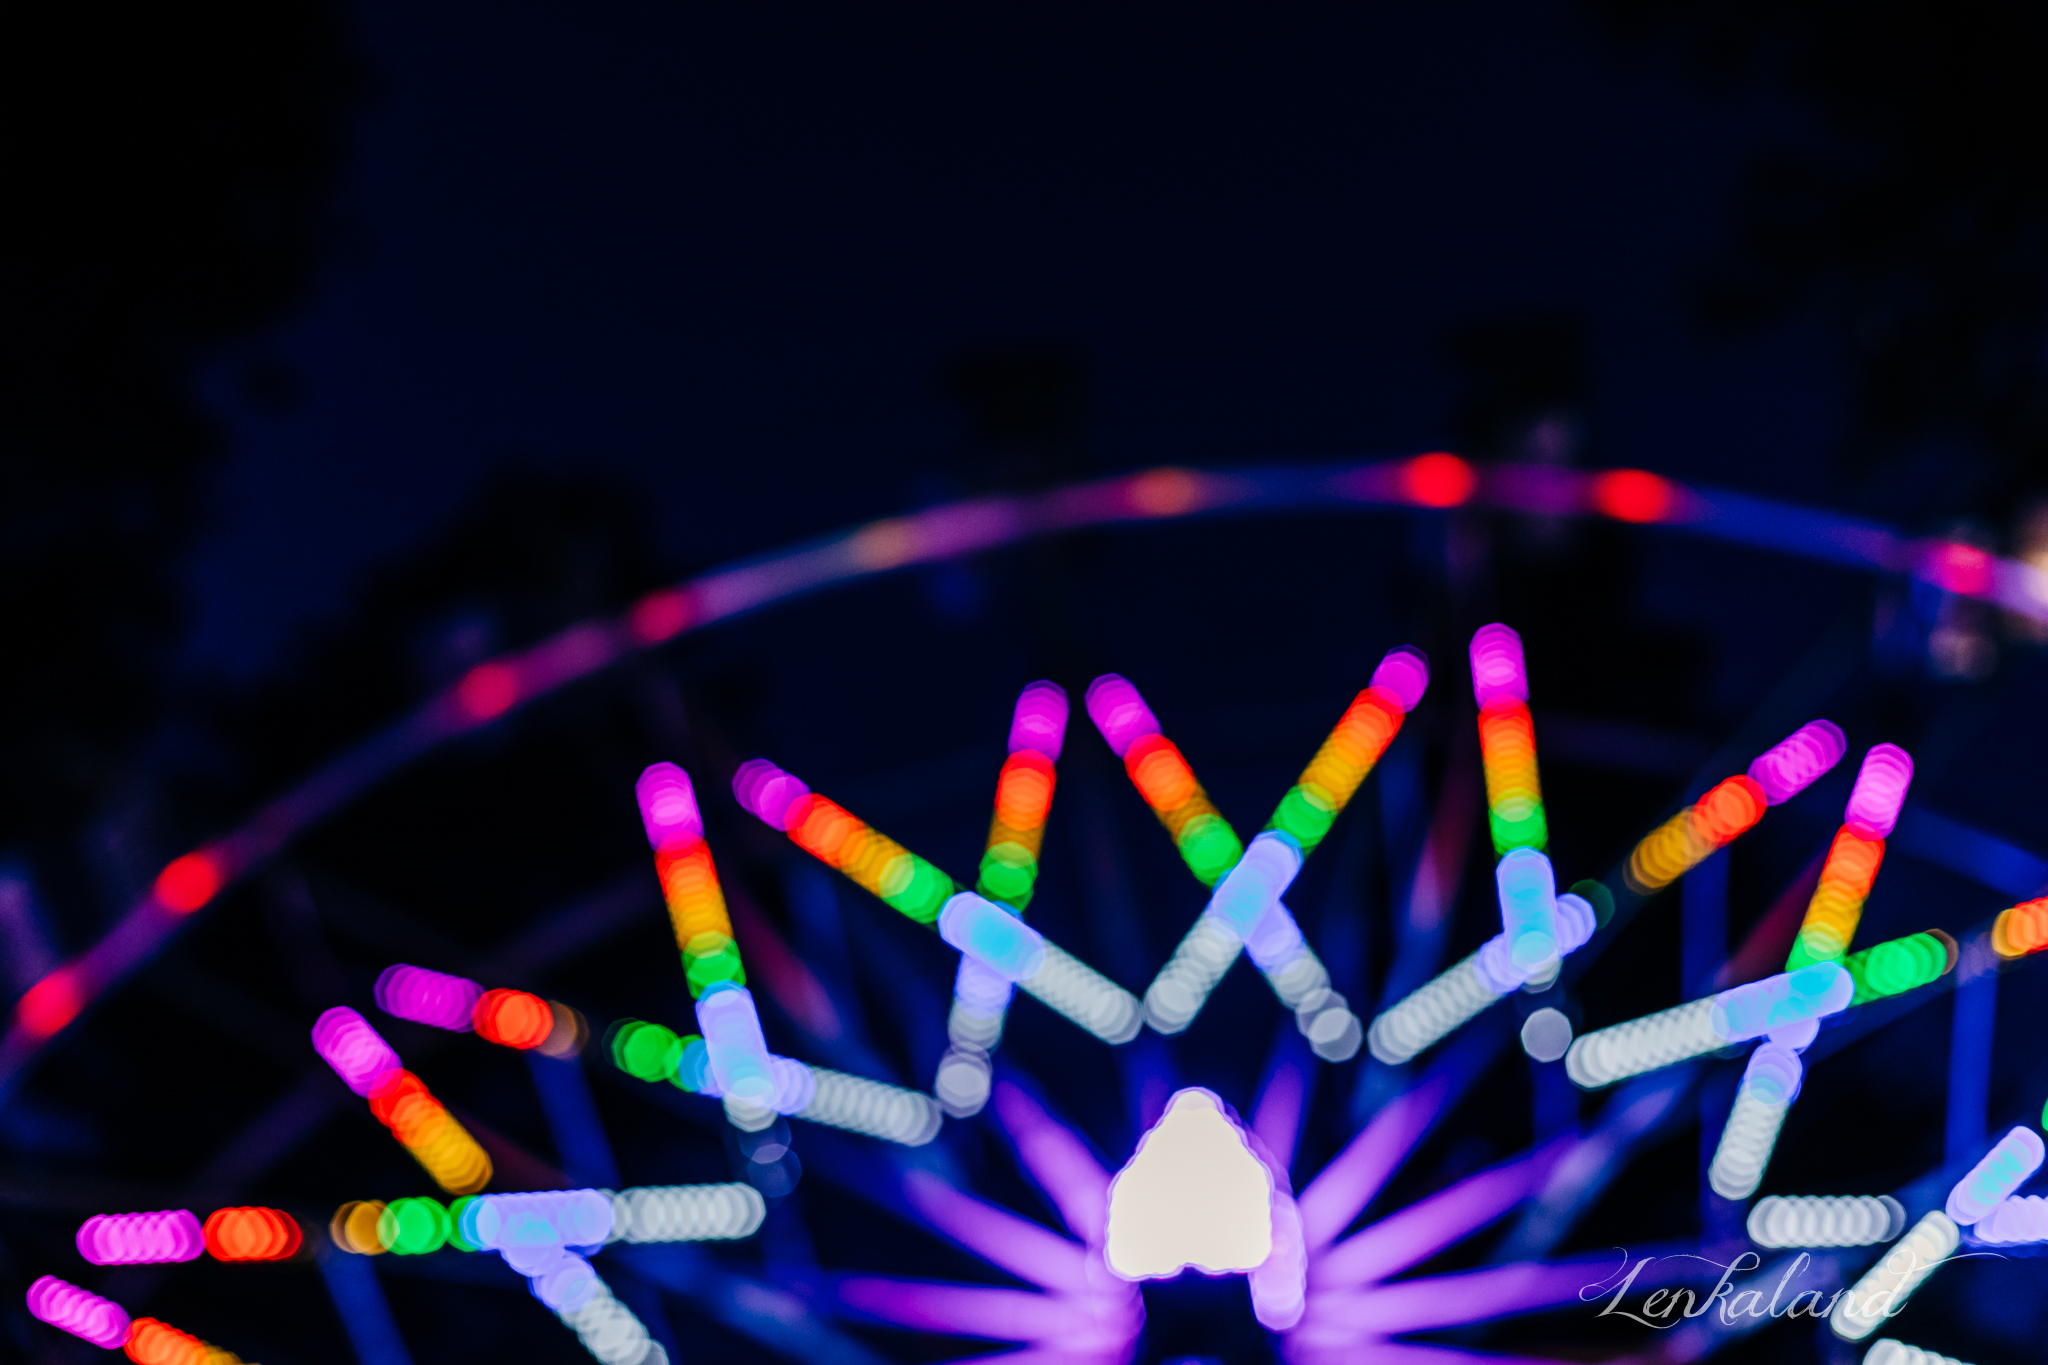 Country Fair Midway at the Nevada County Fair with Lenkaland Photography